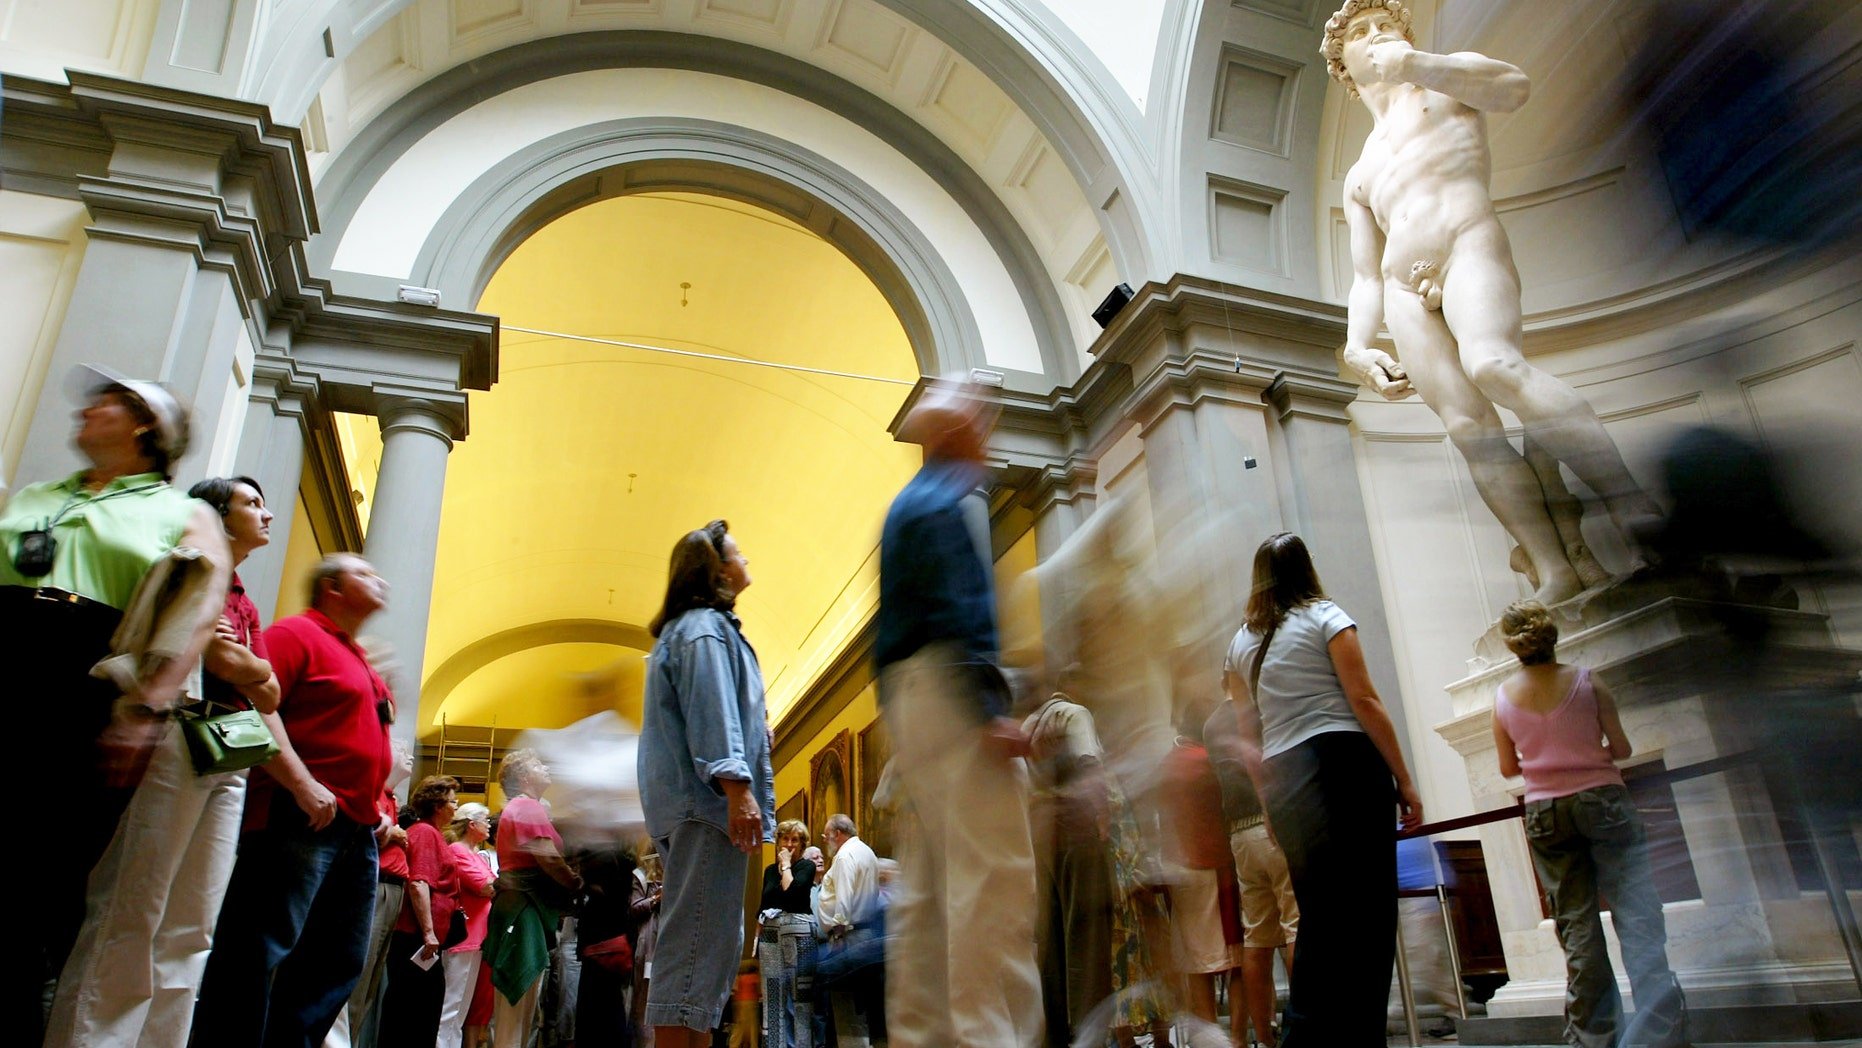 Michelangelo's David is housed at the Galleria Dell'Accademia in Florence, Italy.